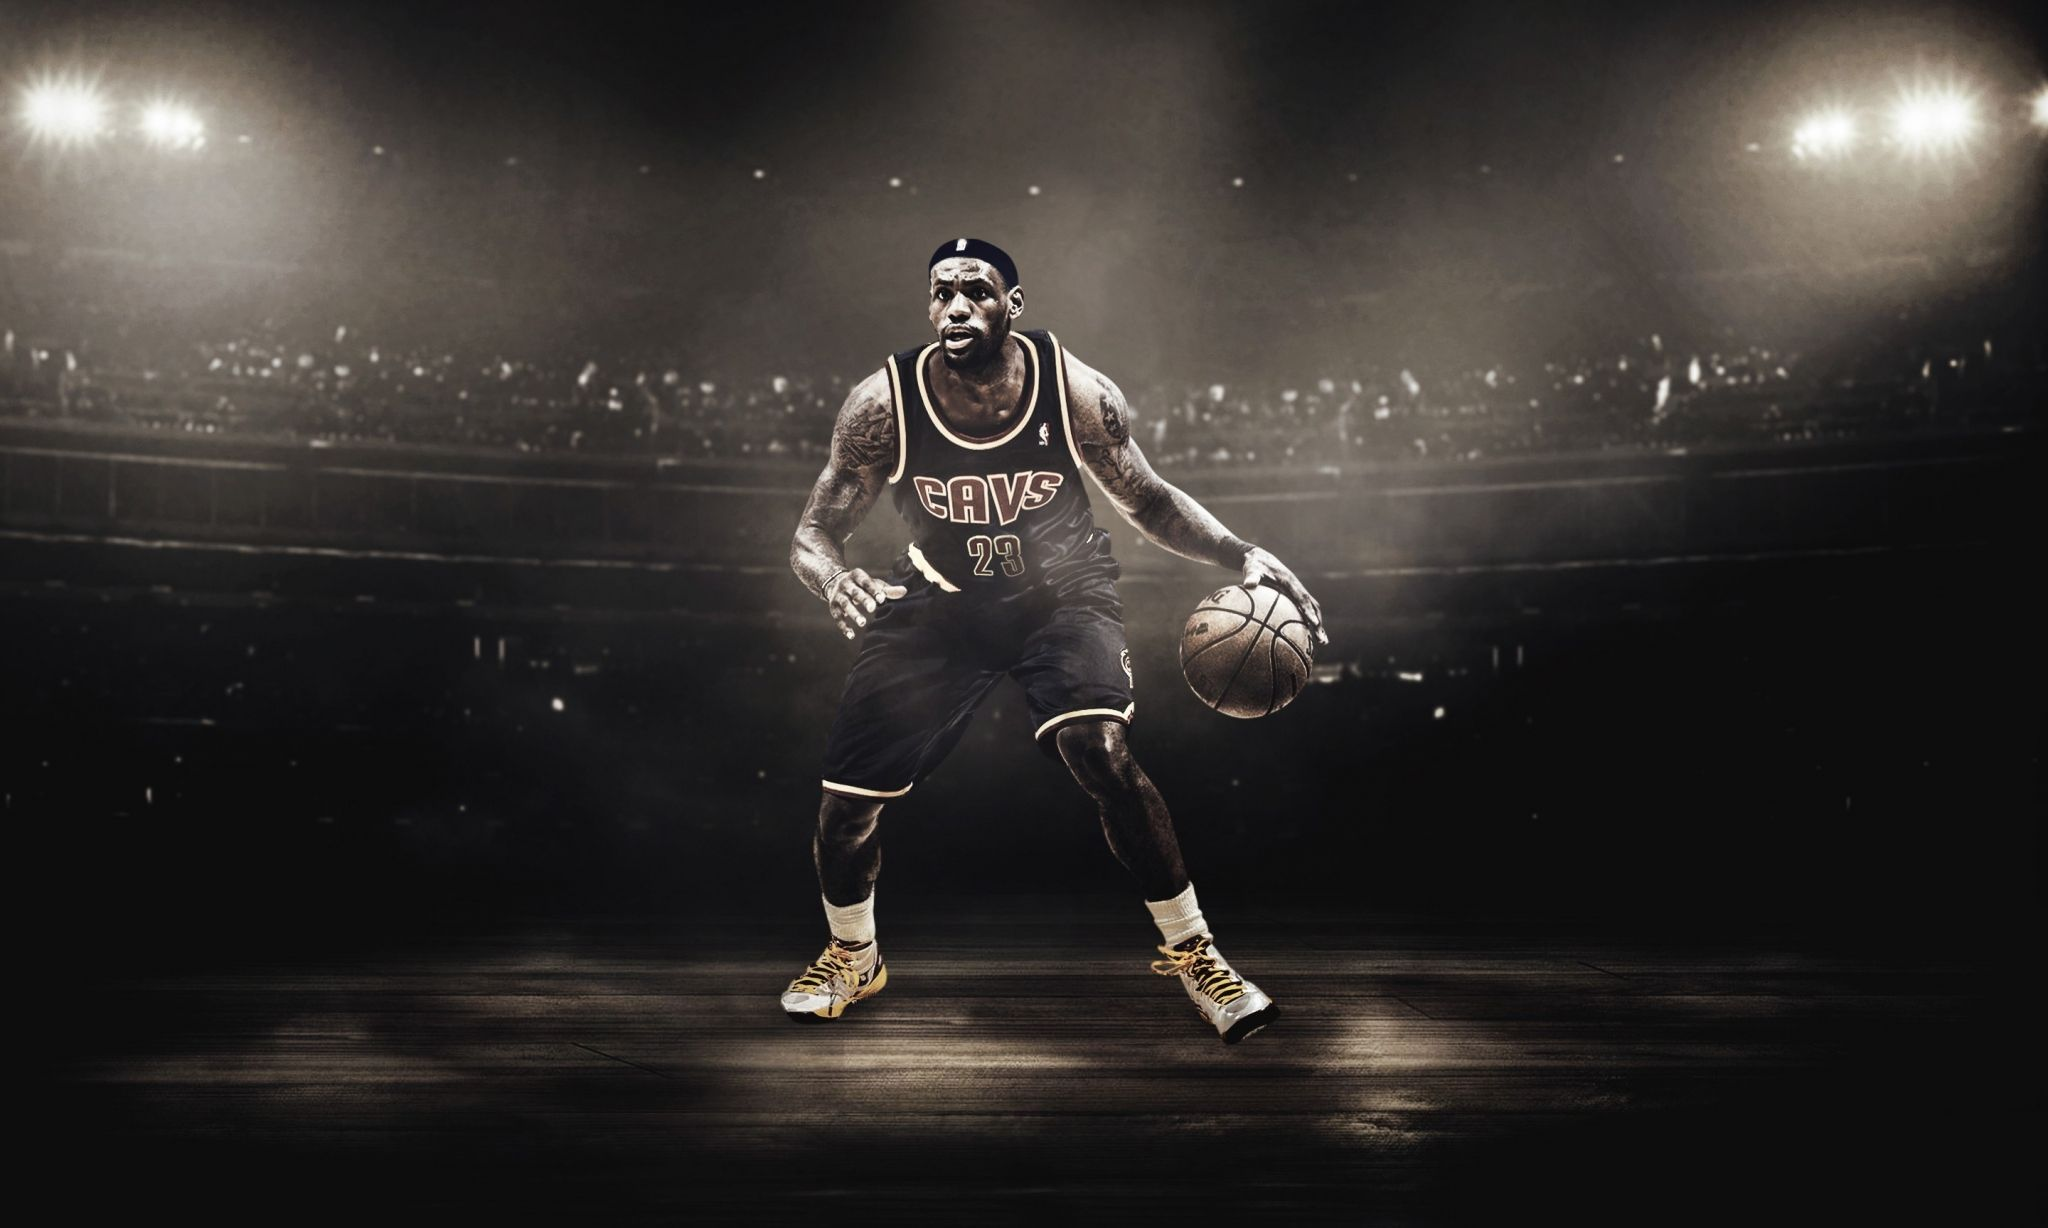 Lebron James Wallpaper For Mac Computers